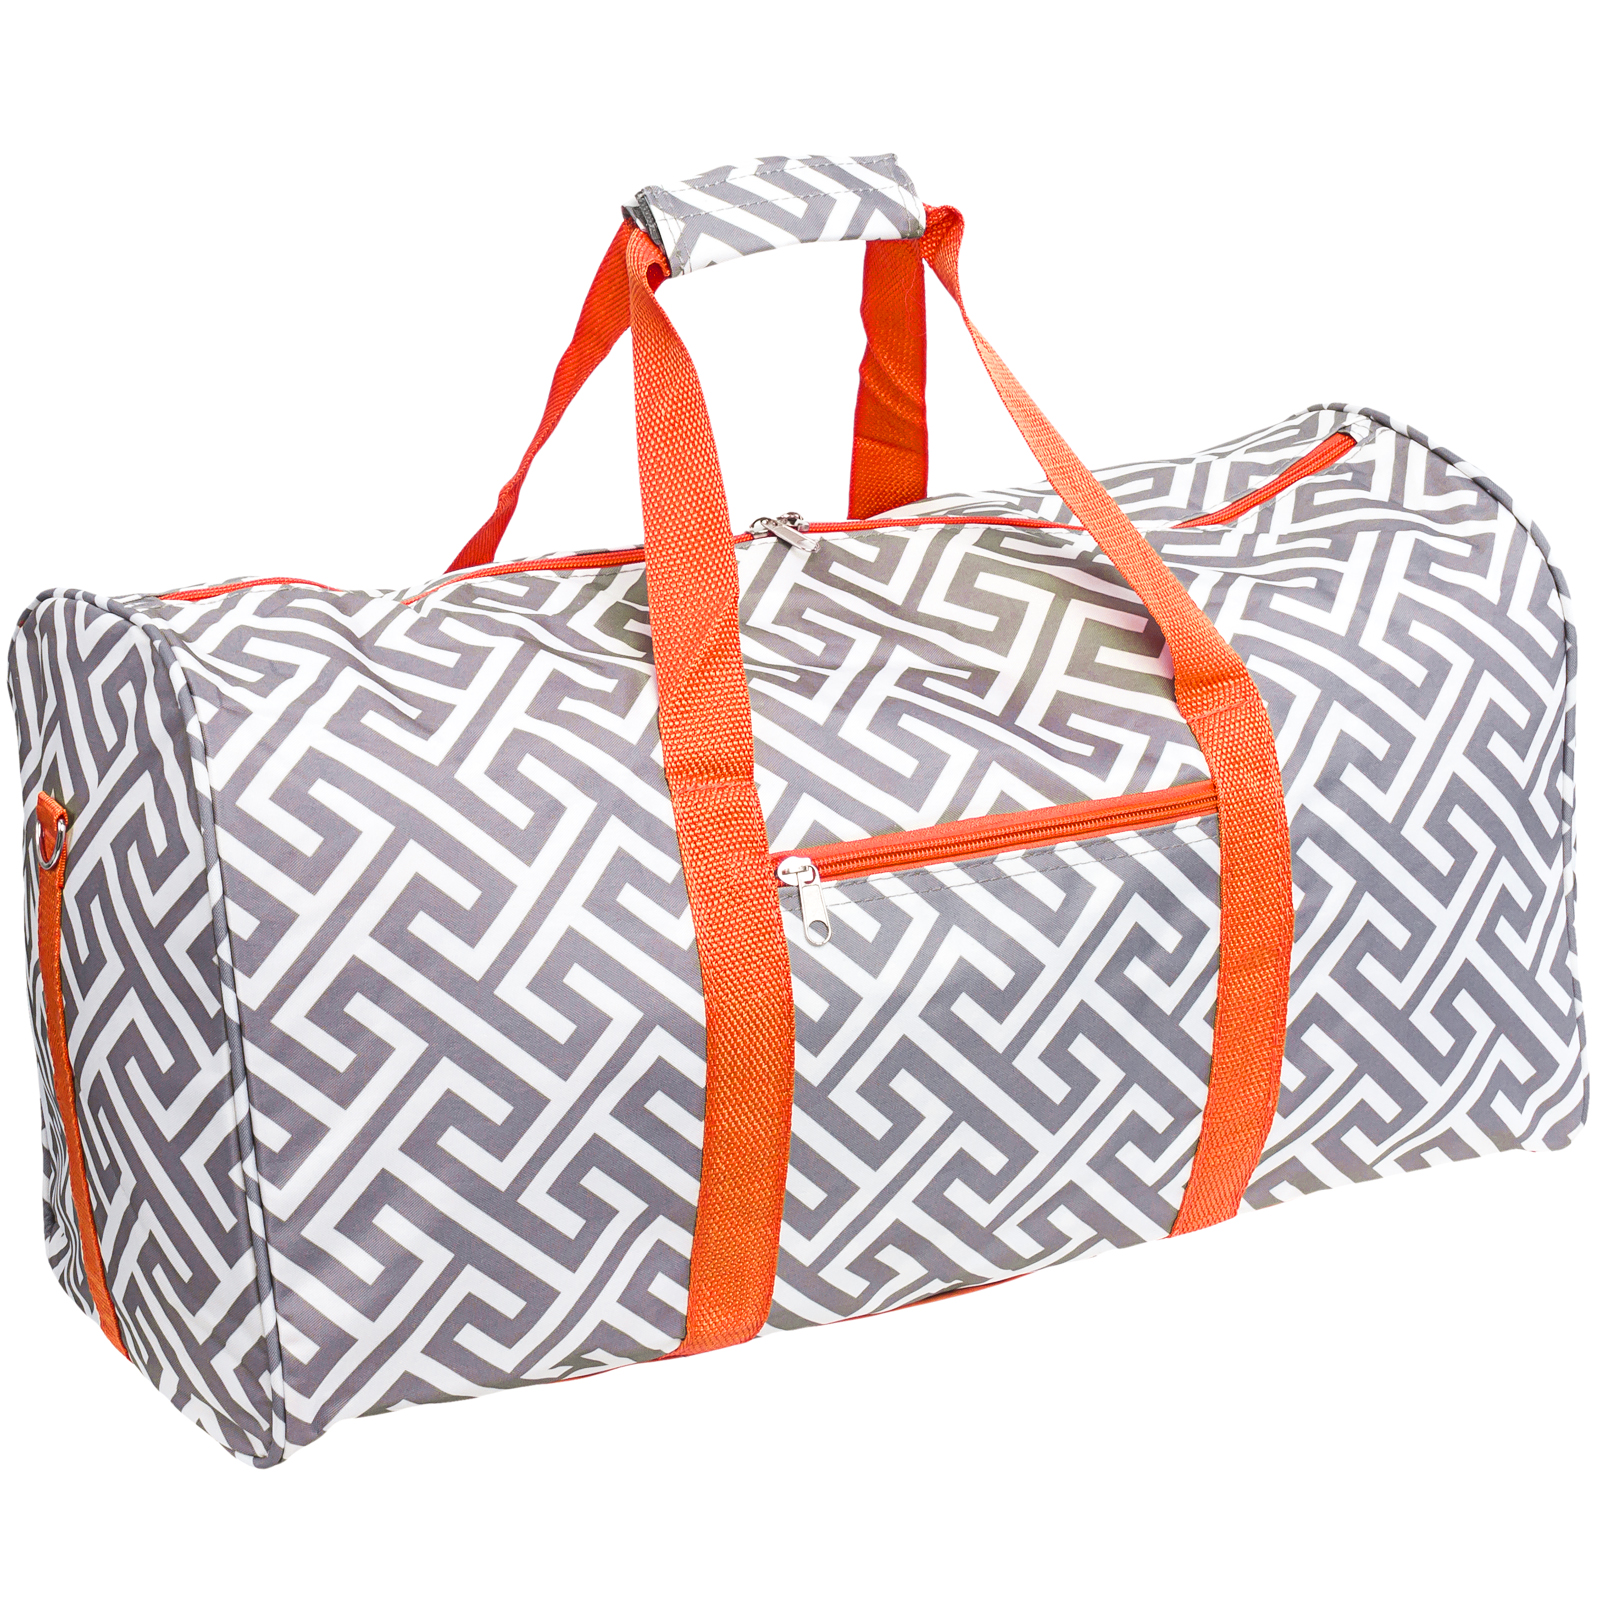 "SILVERHOOKS New Greek Key 22"" Duffle Duffel Travel Carry-On Bag by Gen SH"